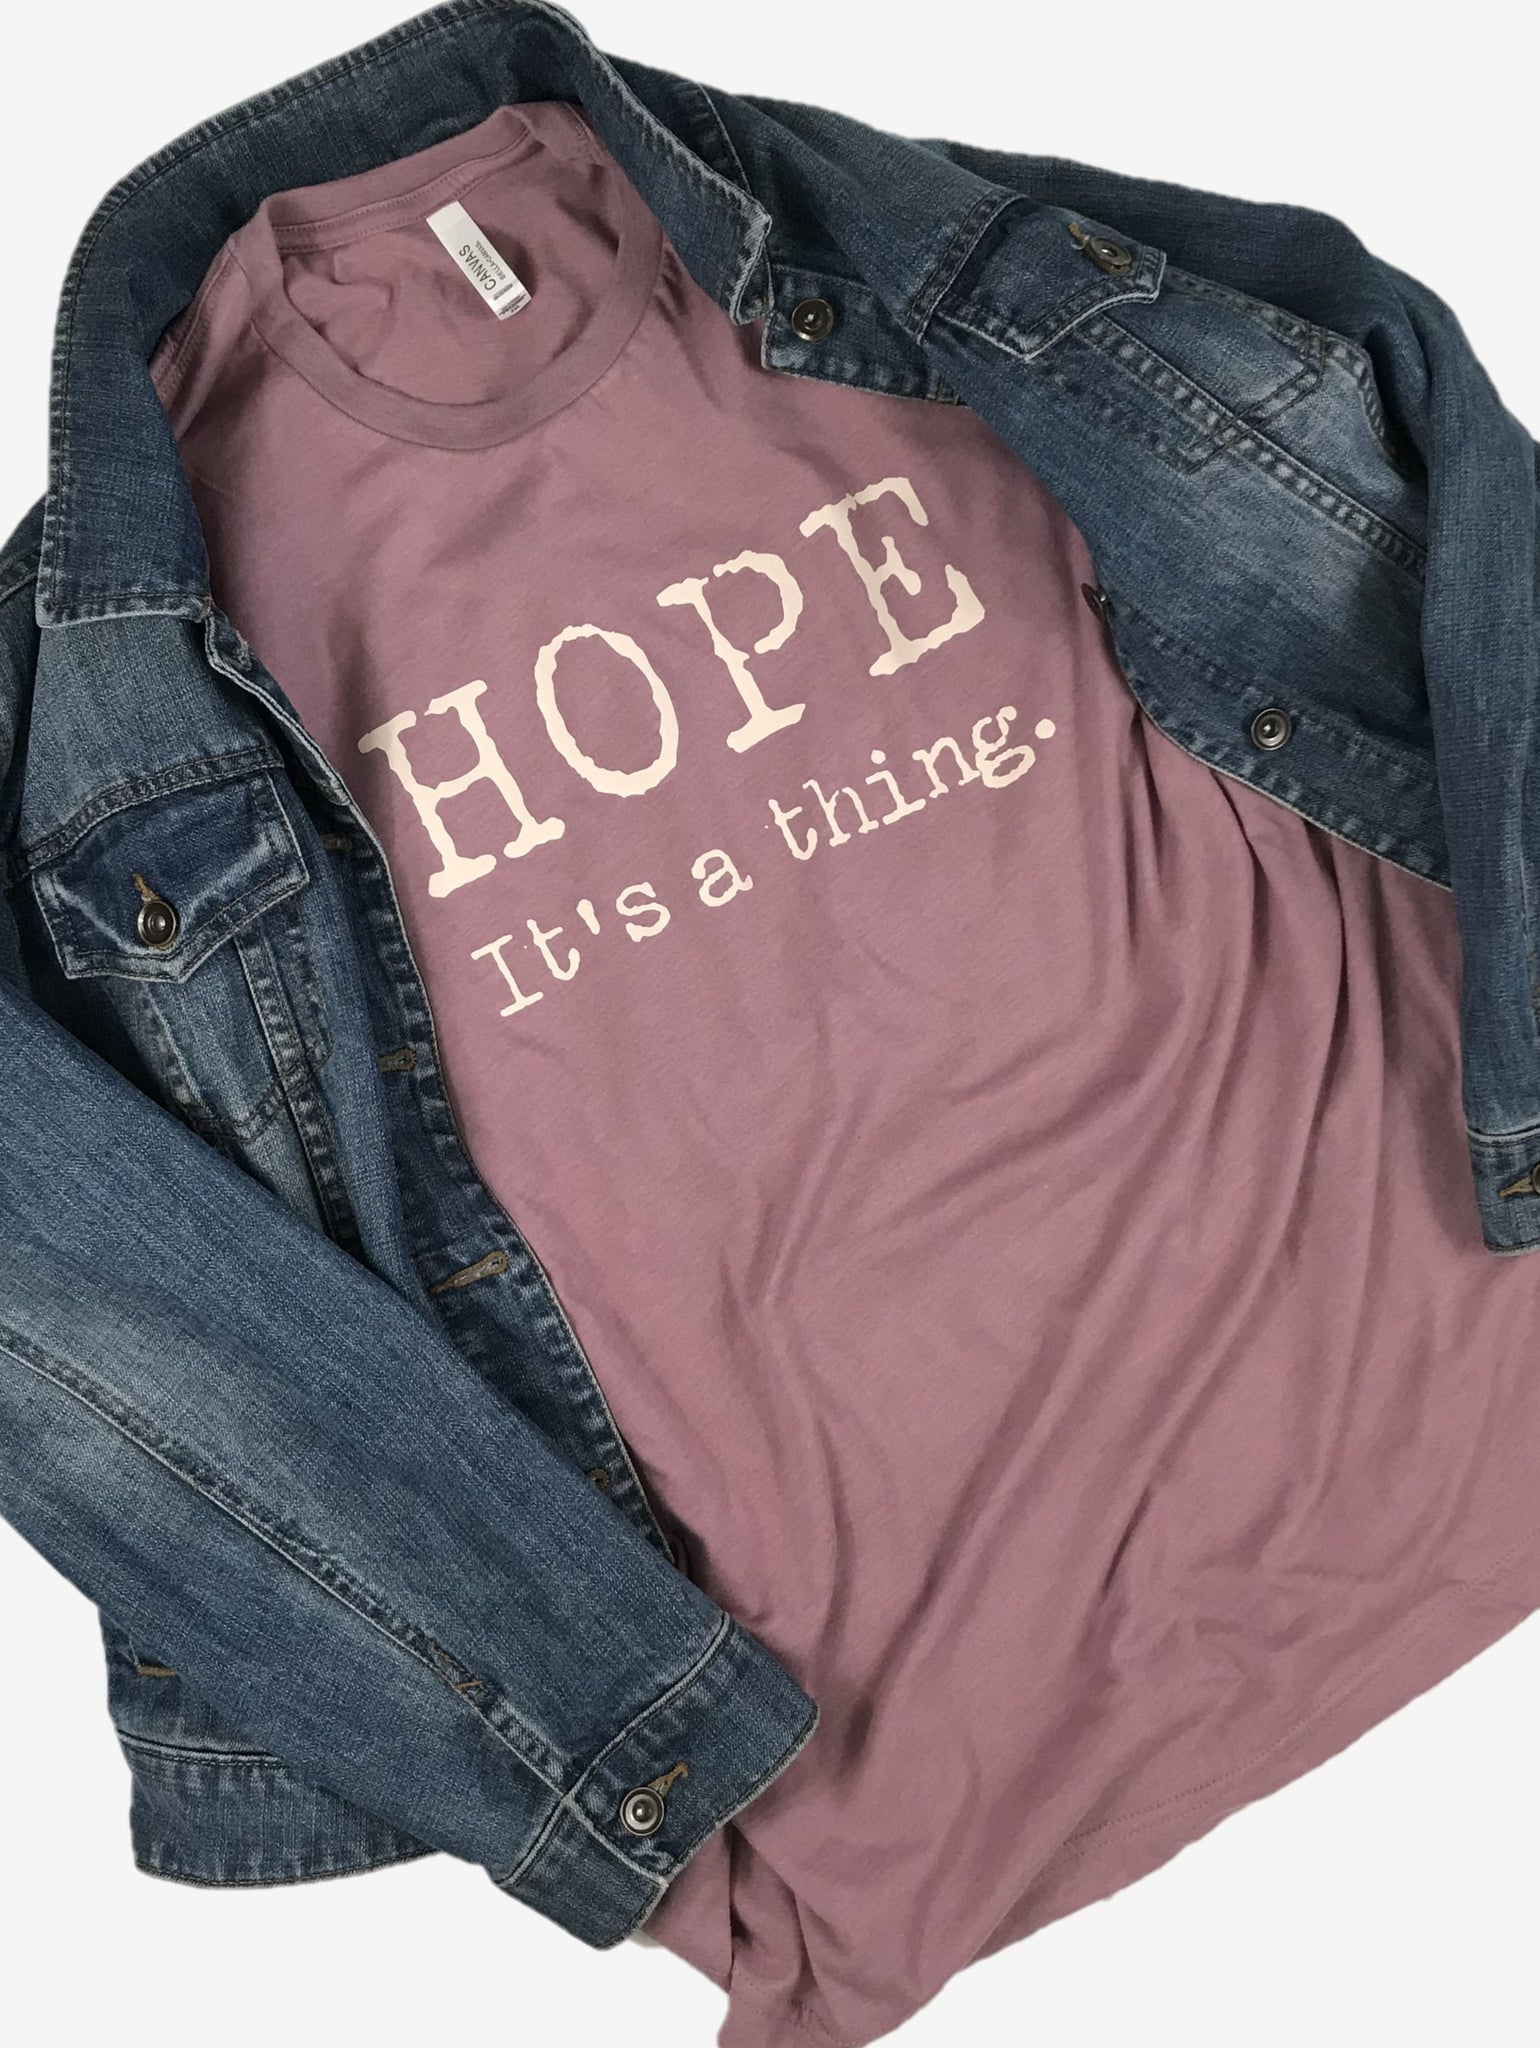 """Hope. It's a thing."" Short Sleeve Tee Shirt, Crew Neck, Heather Orchid"